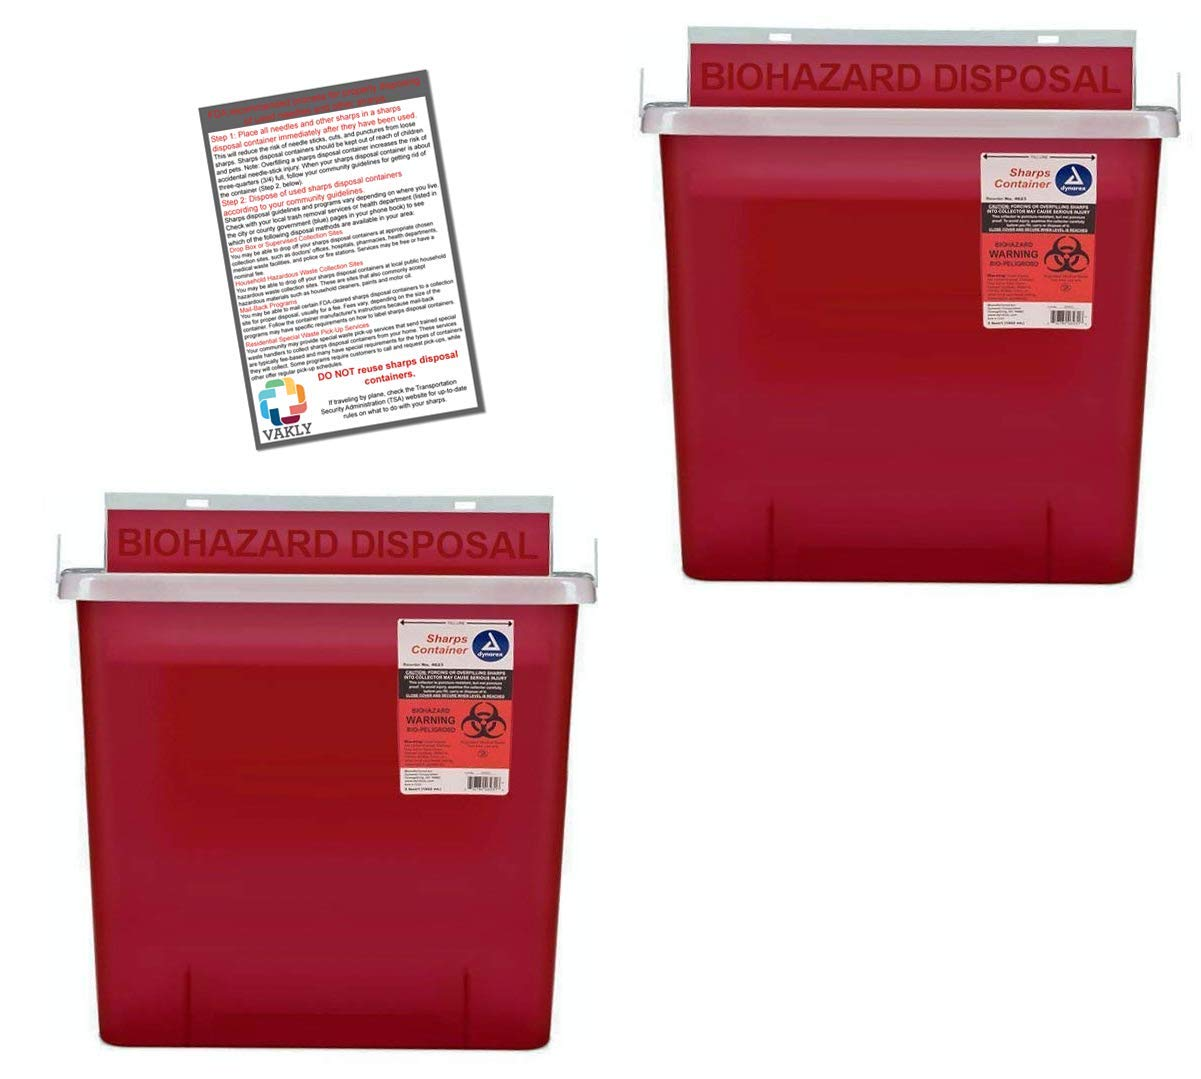 Sharps Container 5 Quart with Mailbox Style Lid - Plus Vakly Biohazard Disposal Guide (2 Pack) by Vakly